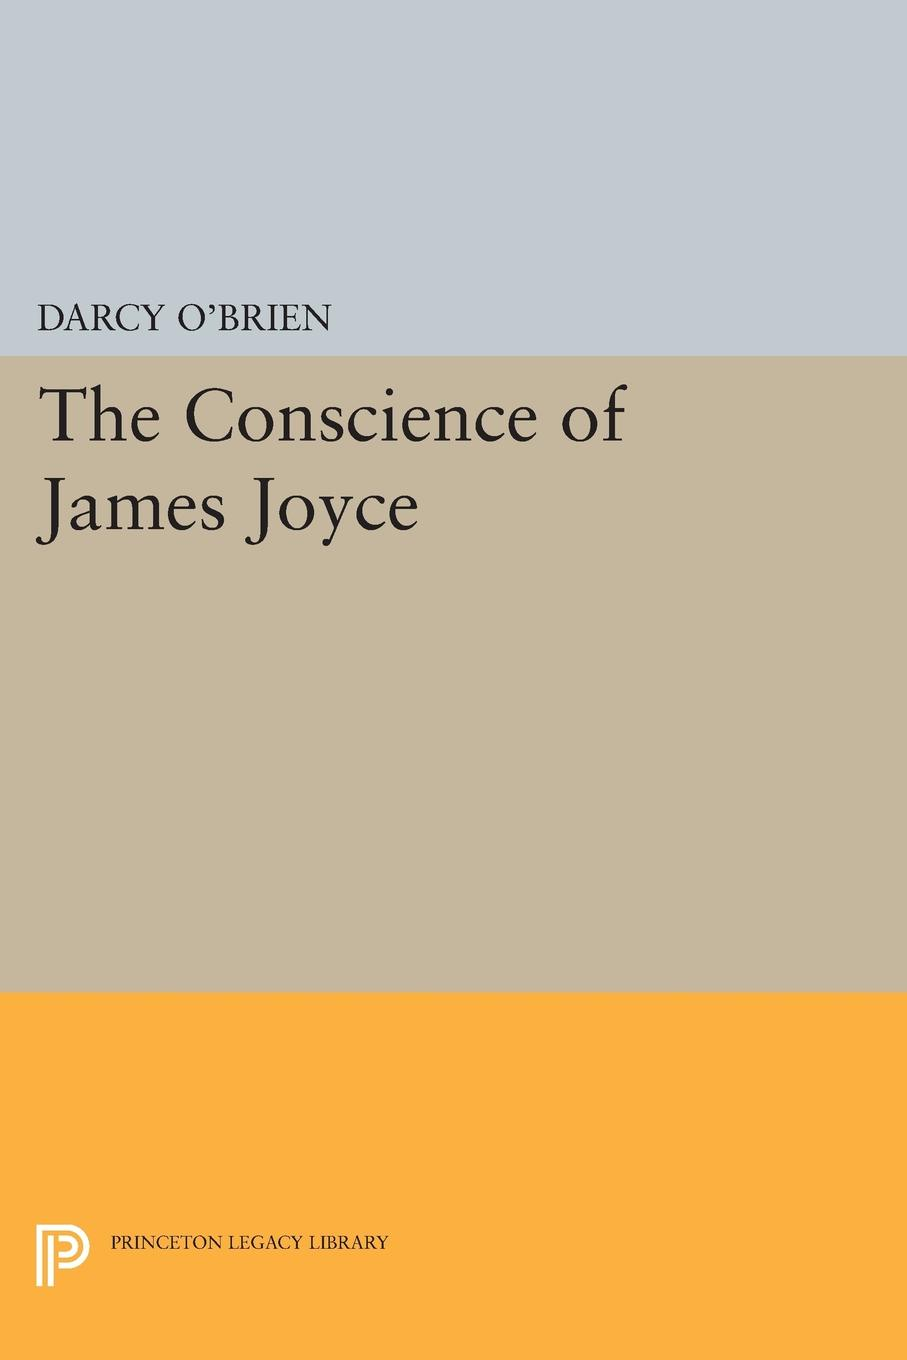 Darcy O'Brien The Conscience of James Joyce ajurmotts g zannotti william n joyce fishing derby poems in princeton tufts